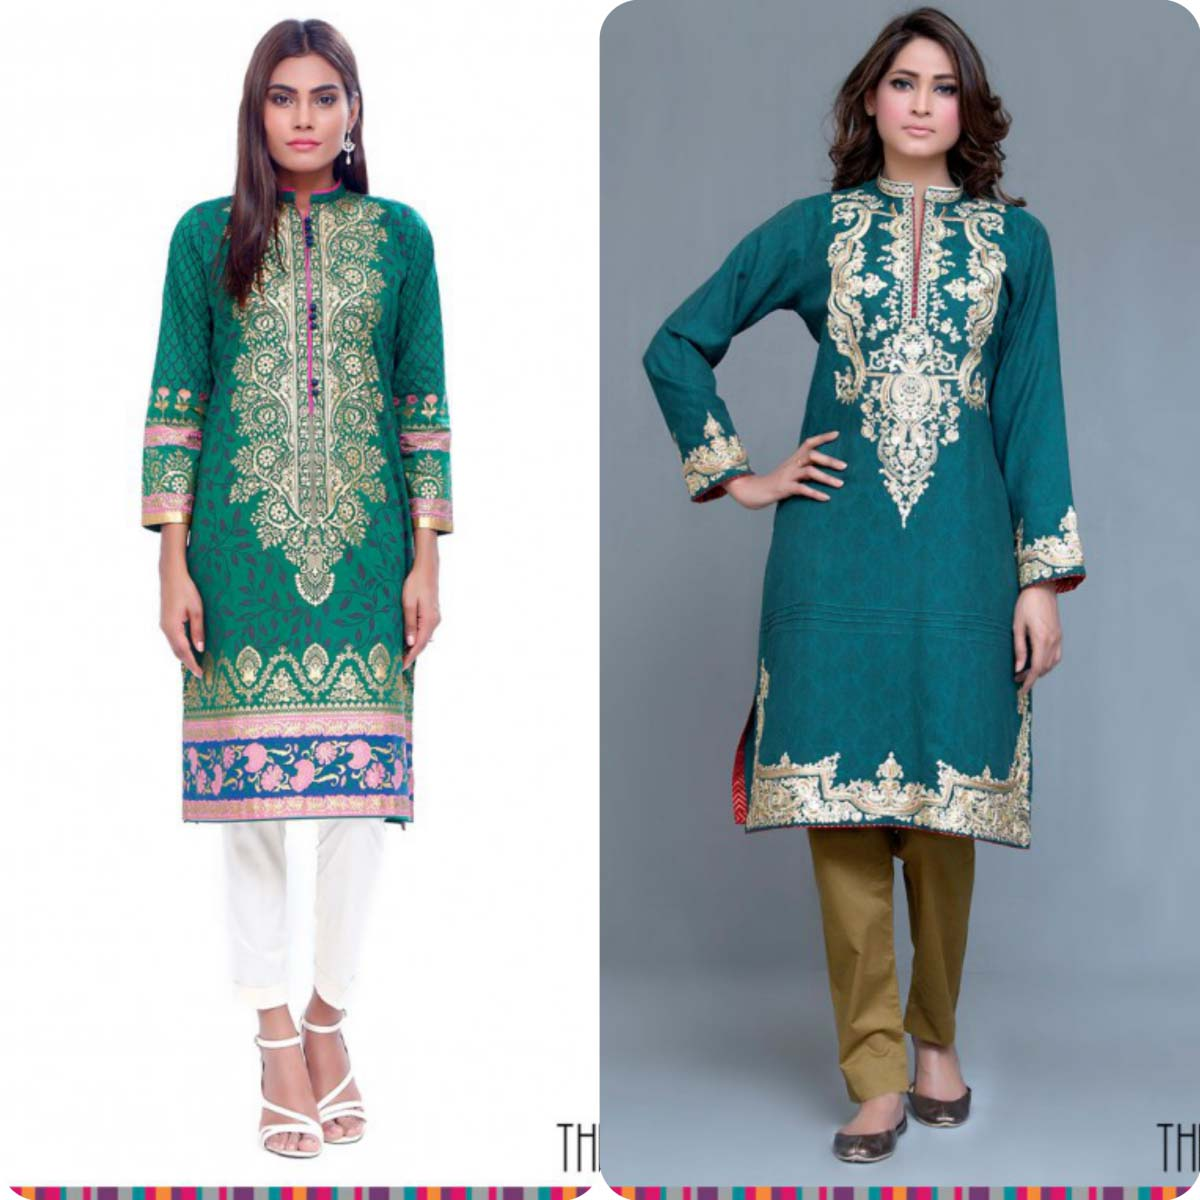 Stylish Embroidered Eid KurtisTunics for Girls By THREDZ 2016-2016 Complete Look-Book (6)